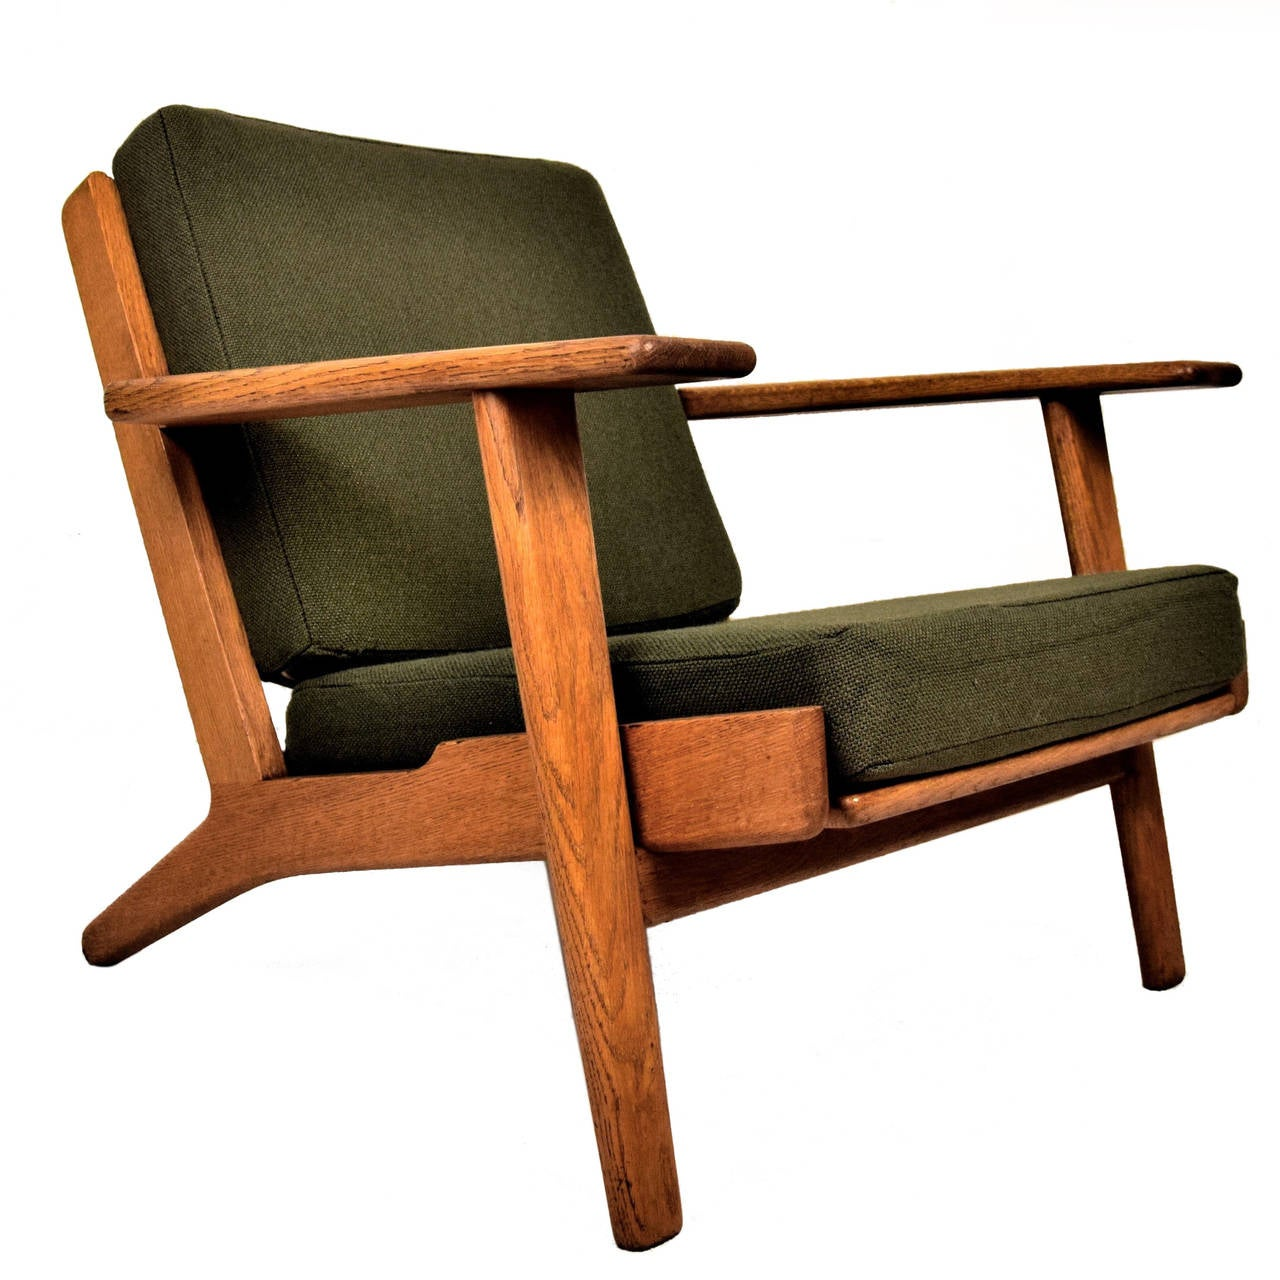 GE290 Low Back Lounge Chair by Hans J Wegner For Sale at